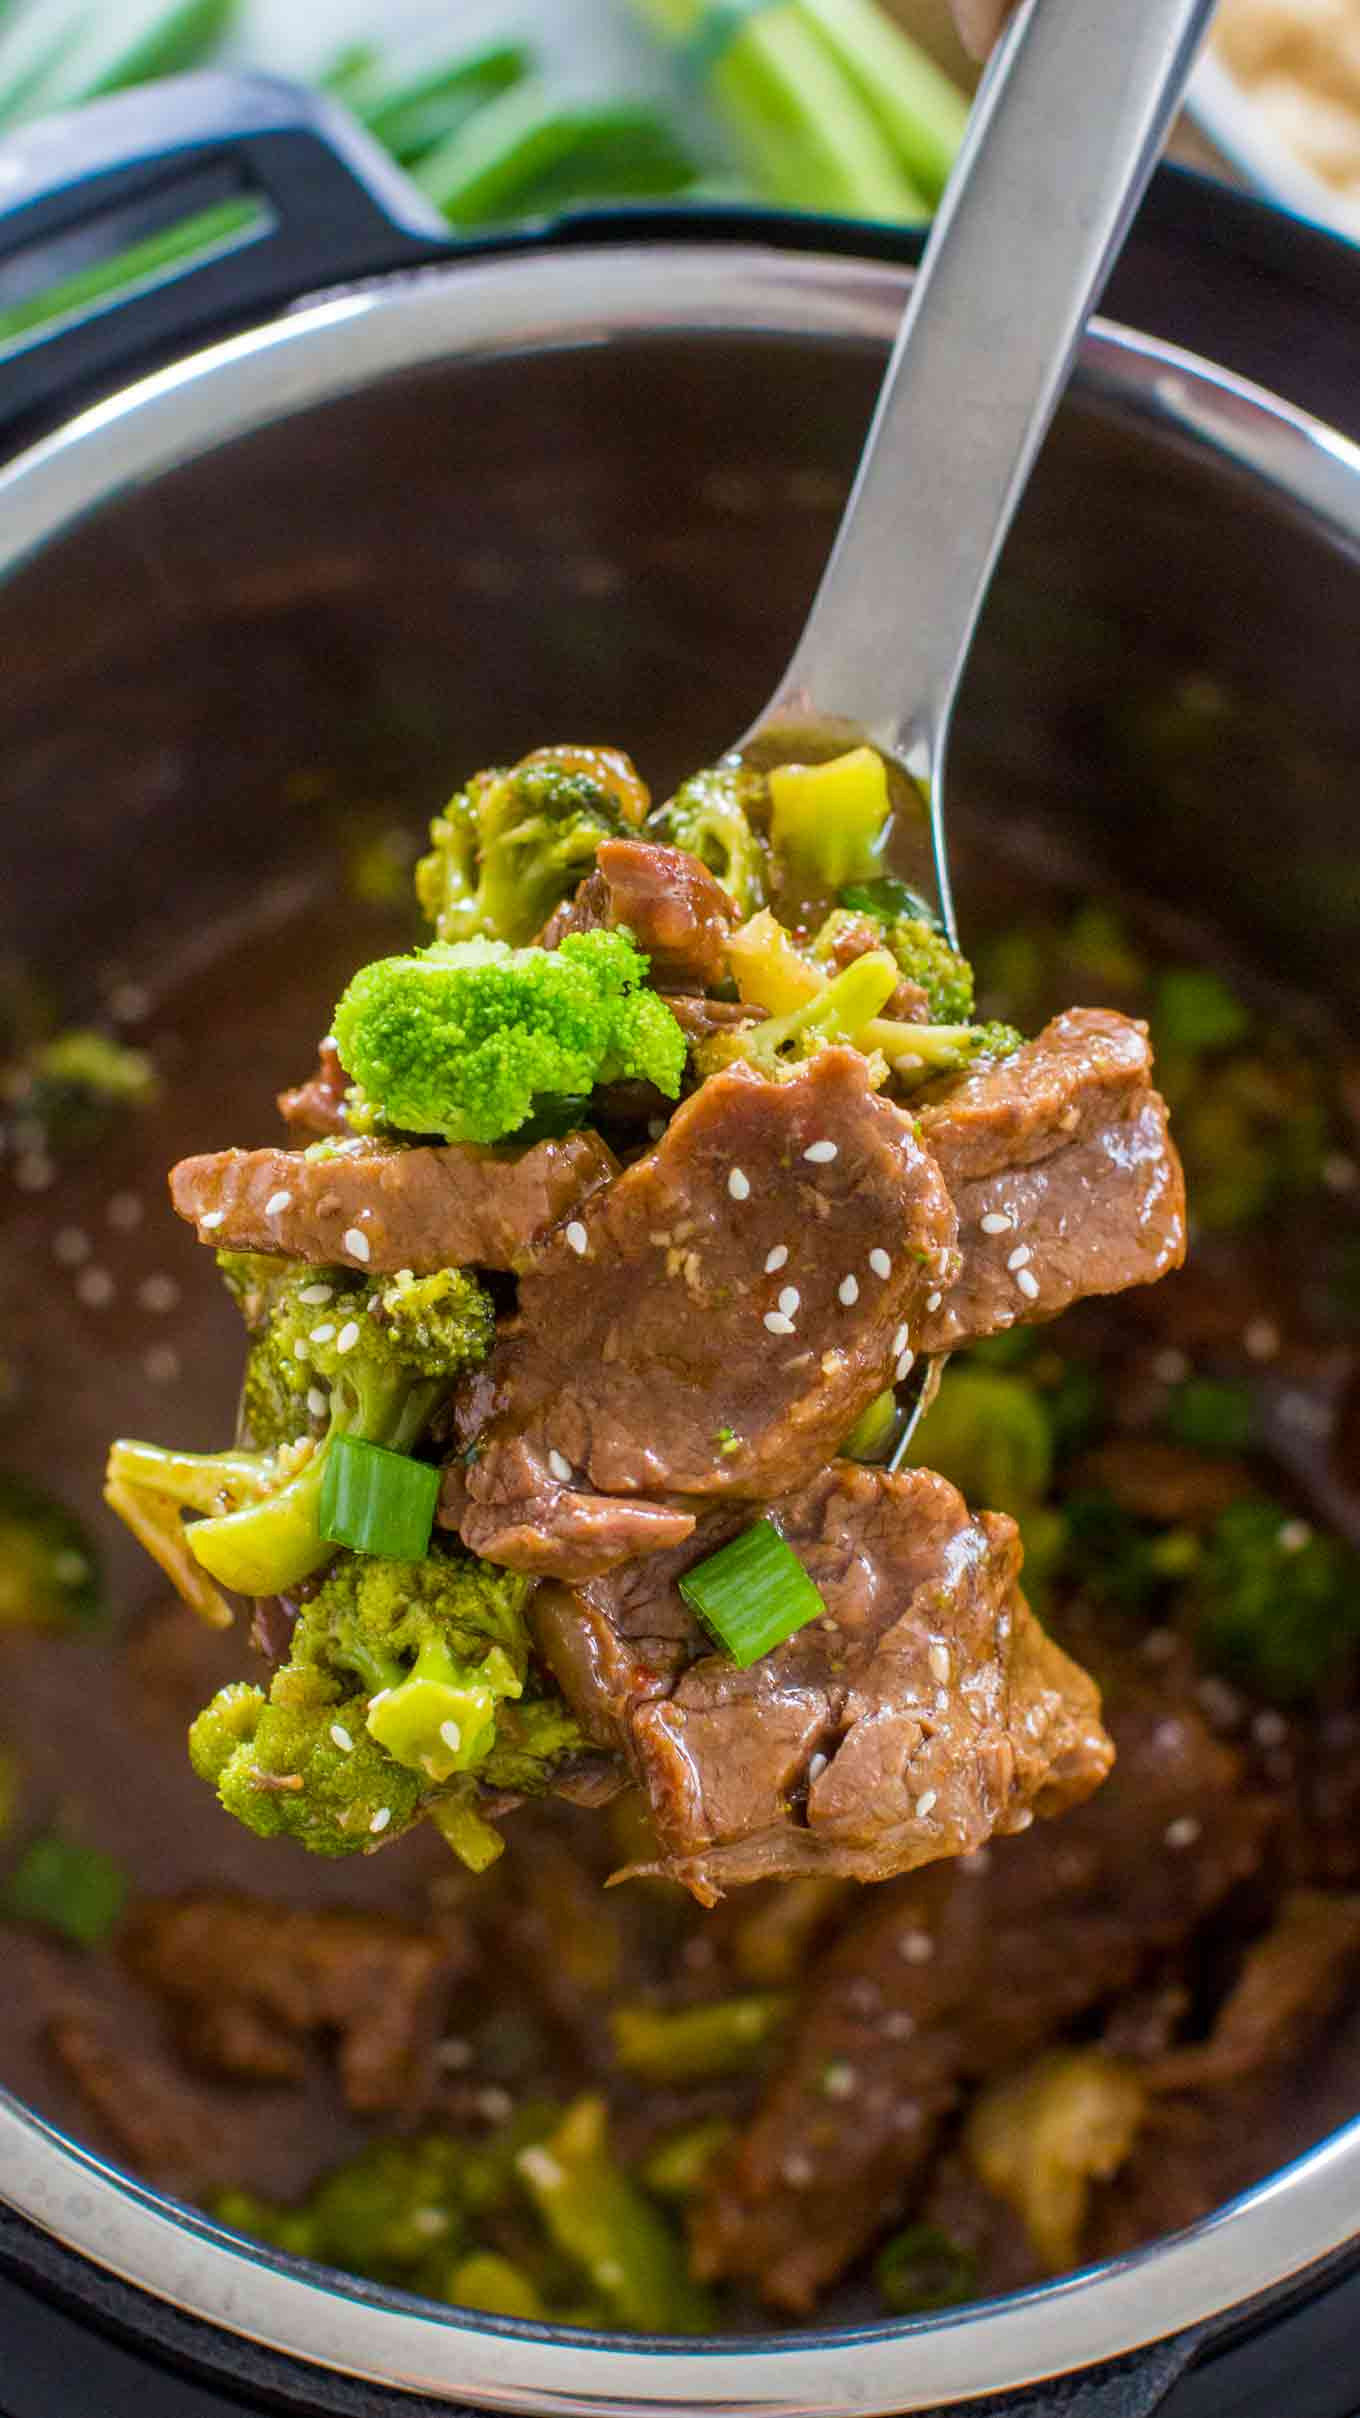 Instant Pot Beef And Broccoli  Instant Pot Beef and Broccoli Sweet and Savory Meals